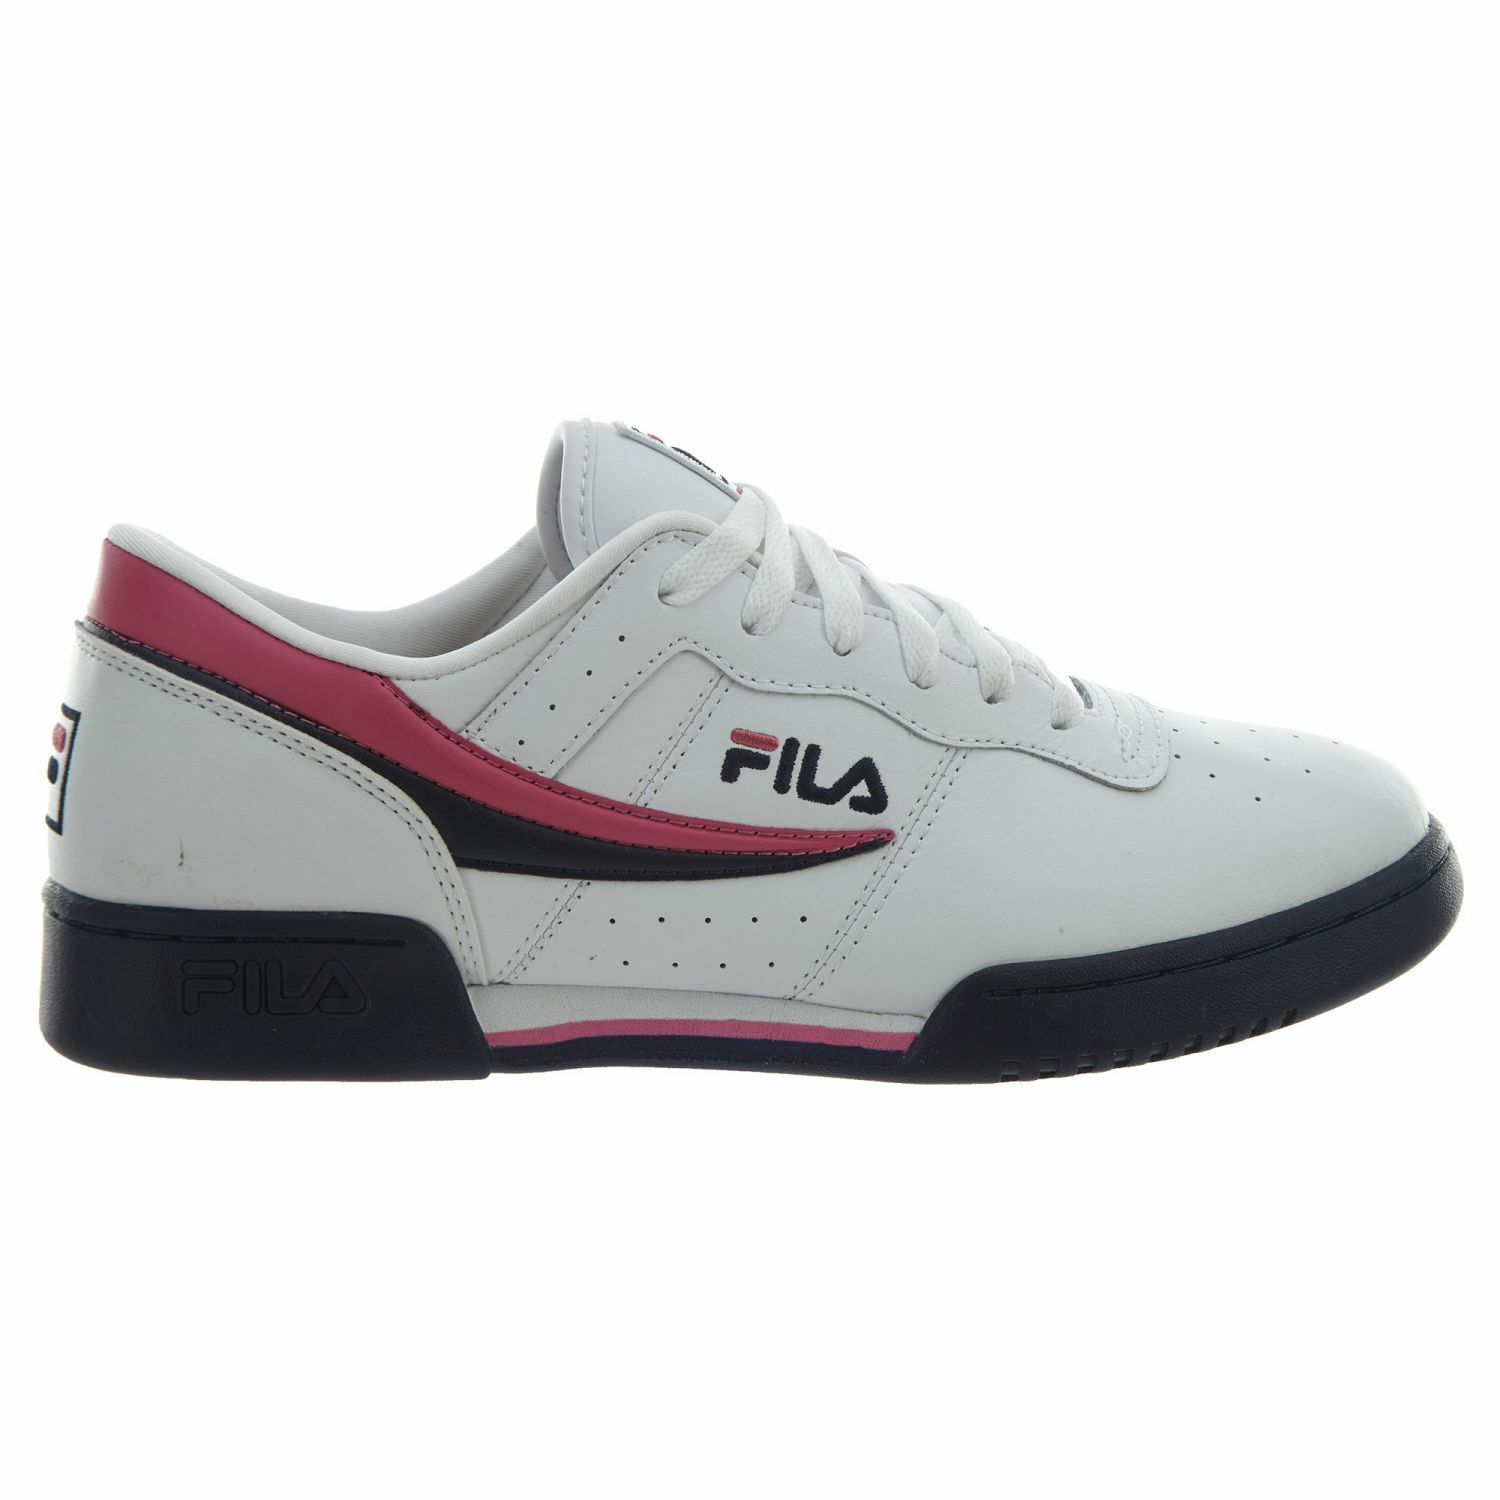 Fila Original Fitness Uomo 1FM00081-148 1FM00081-148 Uomo White Navy Pink Athletic Shoes Size 8 311b1f